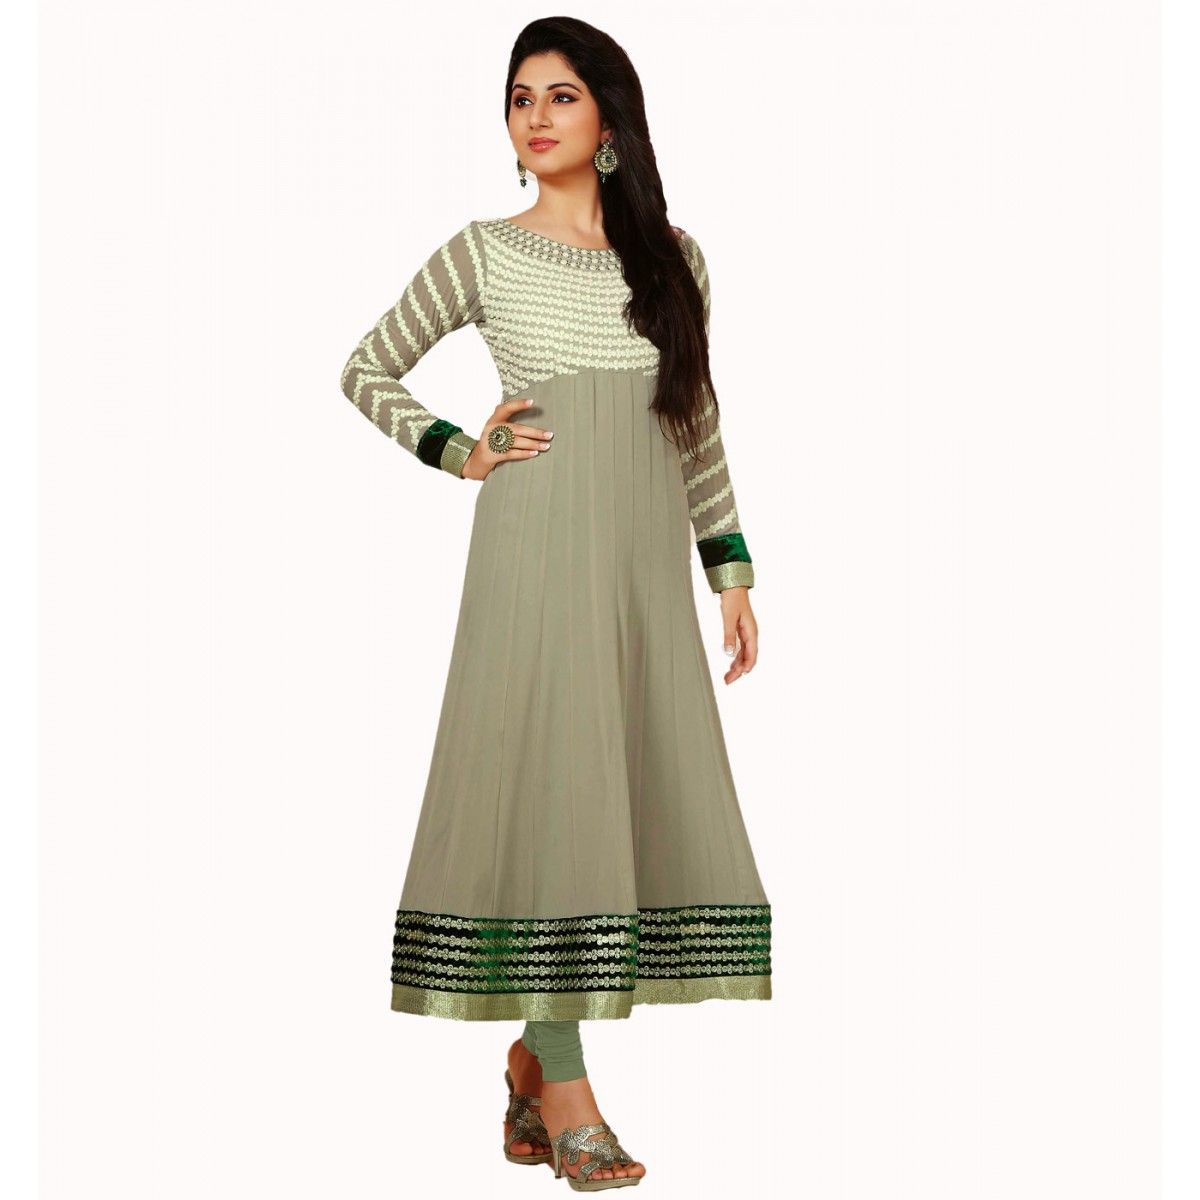 34d69d3f6d Disha Parmar Grey Georgette Indian #Anarkali Kameez #SalwarKameez #Dress  #WomenClothing #Fashion